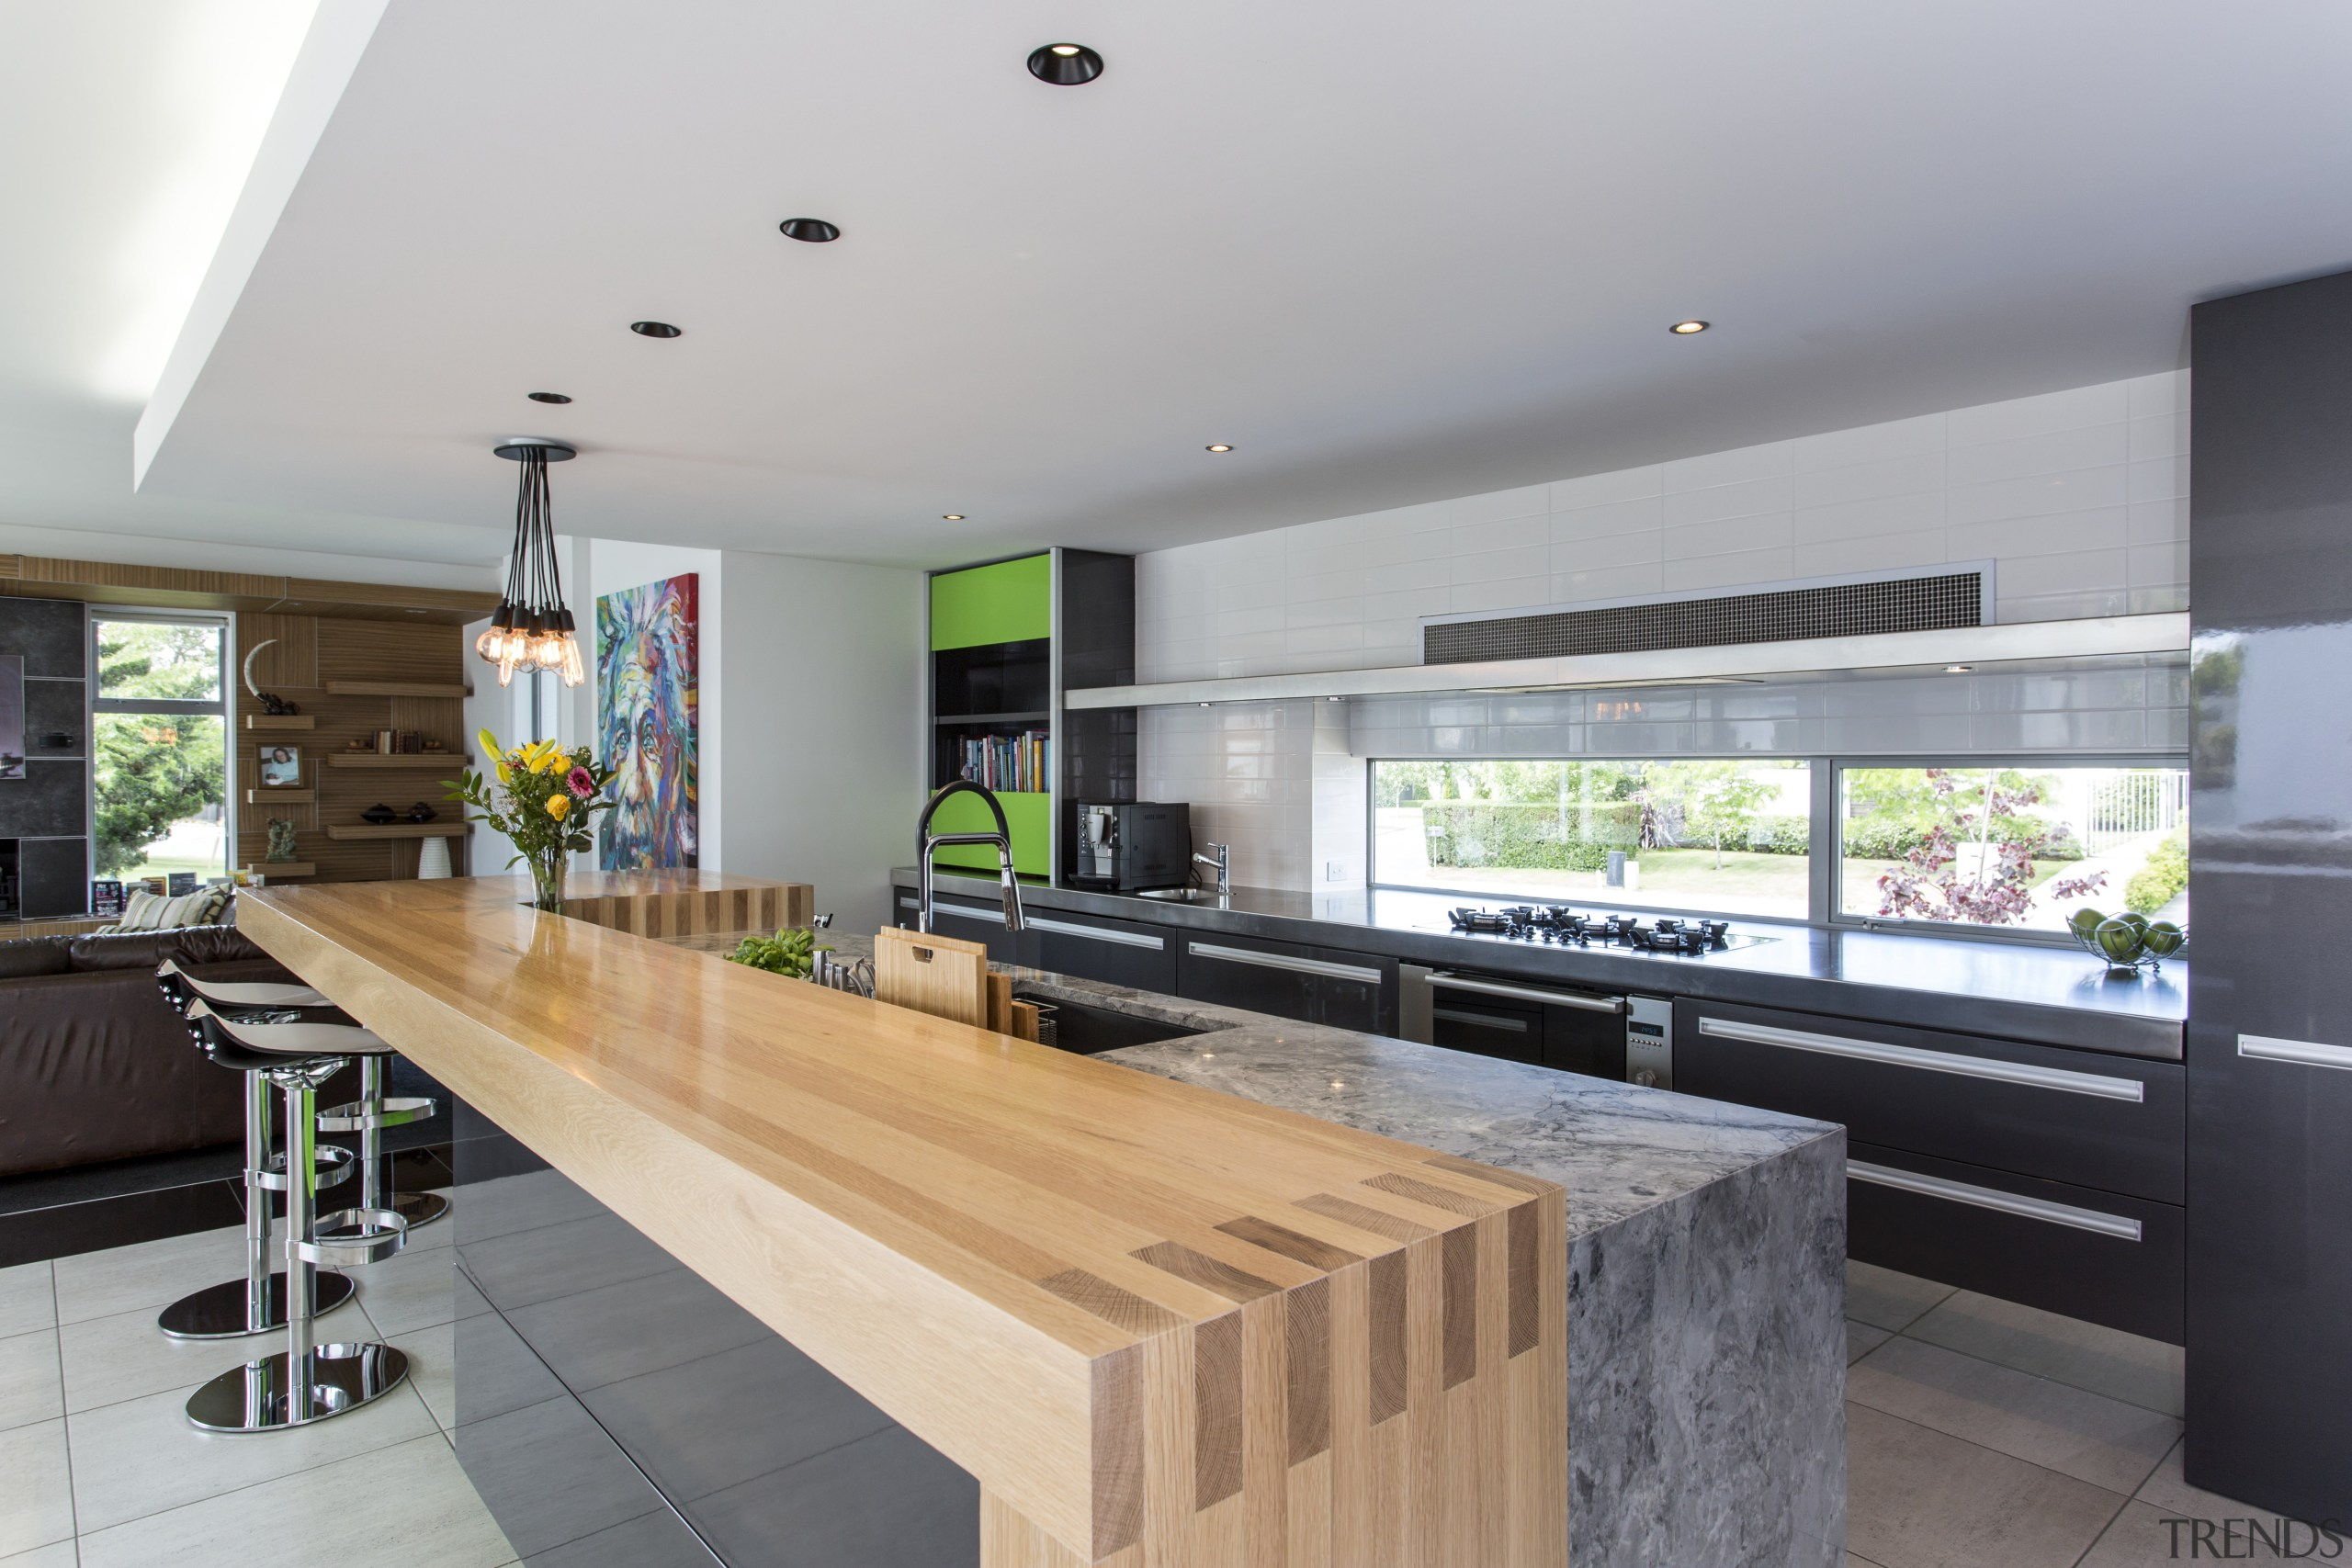 This crisp, geometric design caters to the owners countertop, house, interior design, kitchen, property, real estate, gray